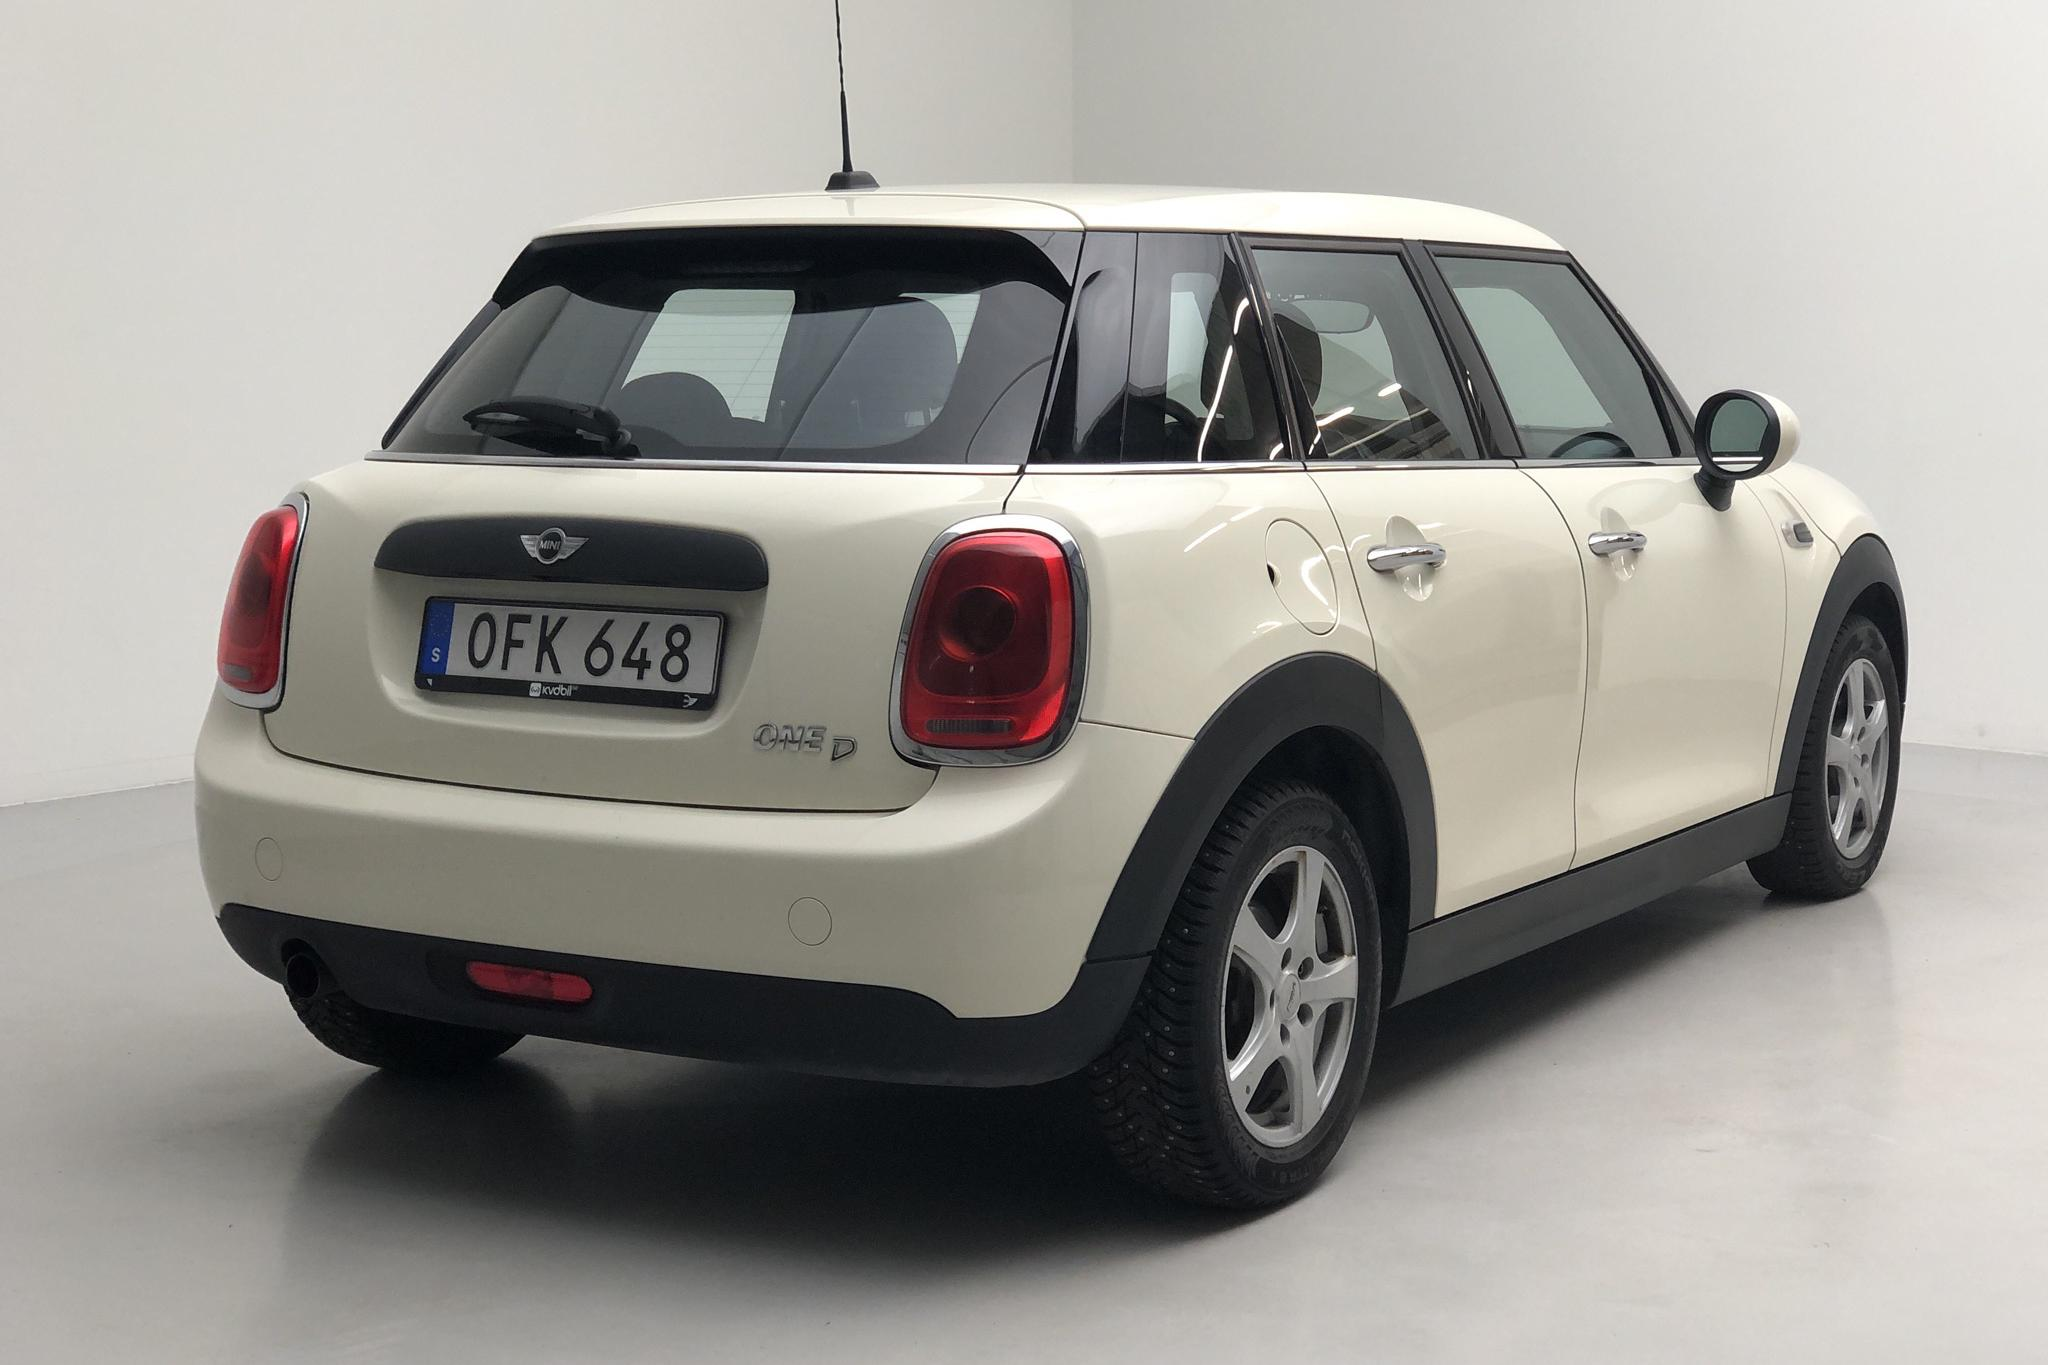 MINI One D Hatch 5dr (95hk) - 12 244 mil - Manuell - vit - 2016